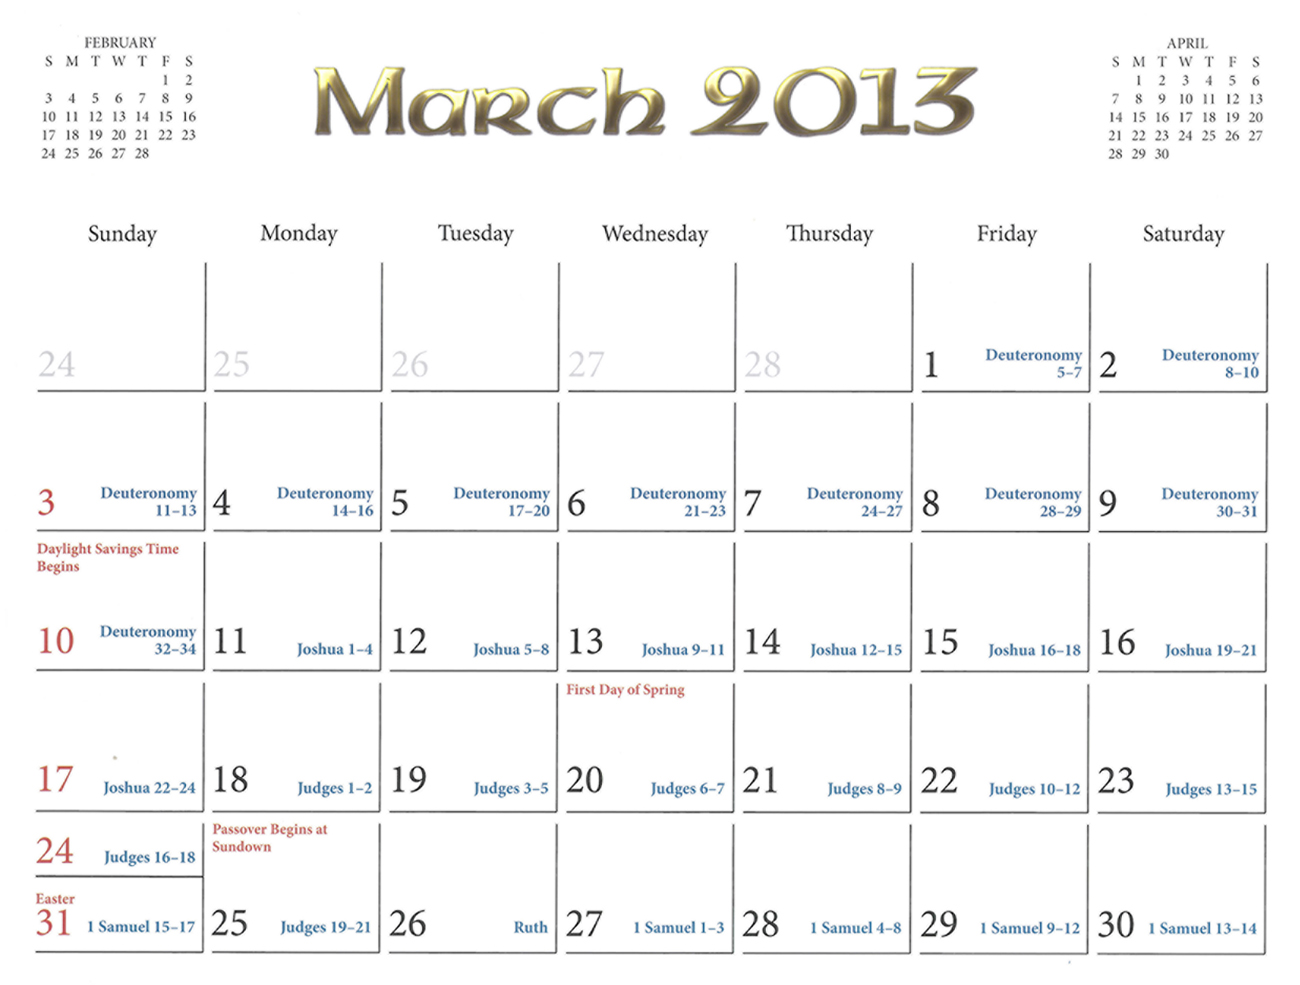 2013 Prophecy Calendar: March - Place of His Birth and Time of His Coming